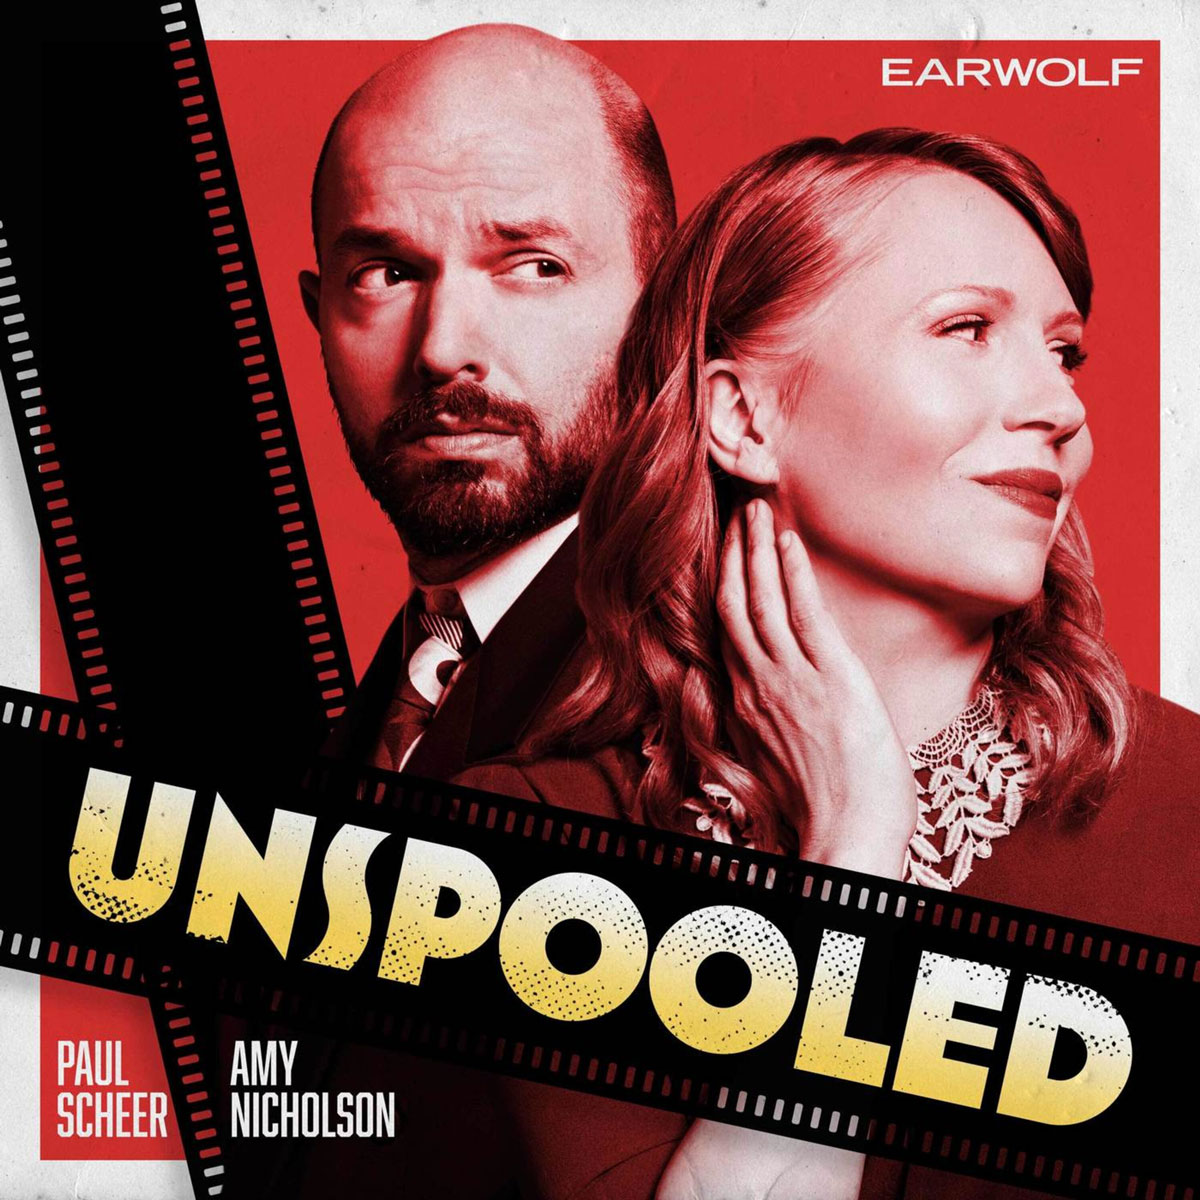 Paul Scheer and film critic Amy Nicholson take on the AFI's Top 100 list on the podcast 'Unspooled.'